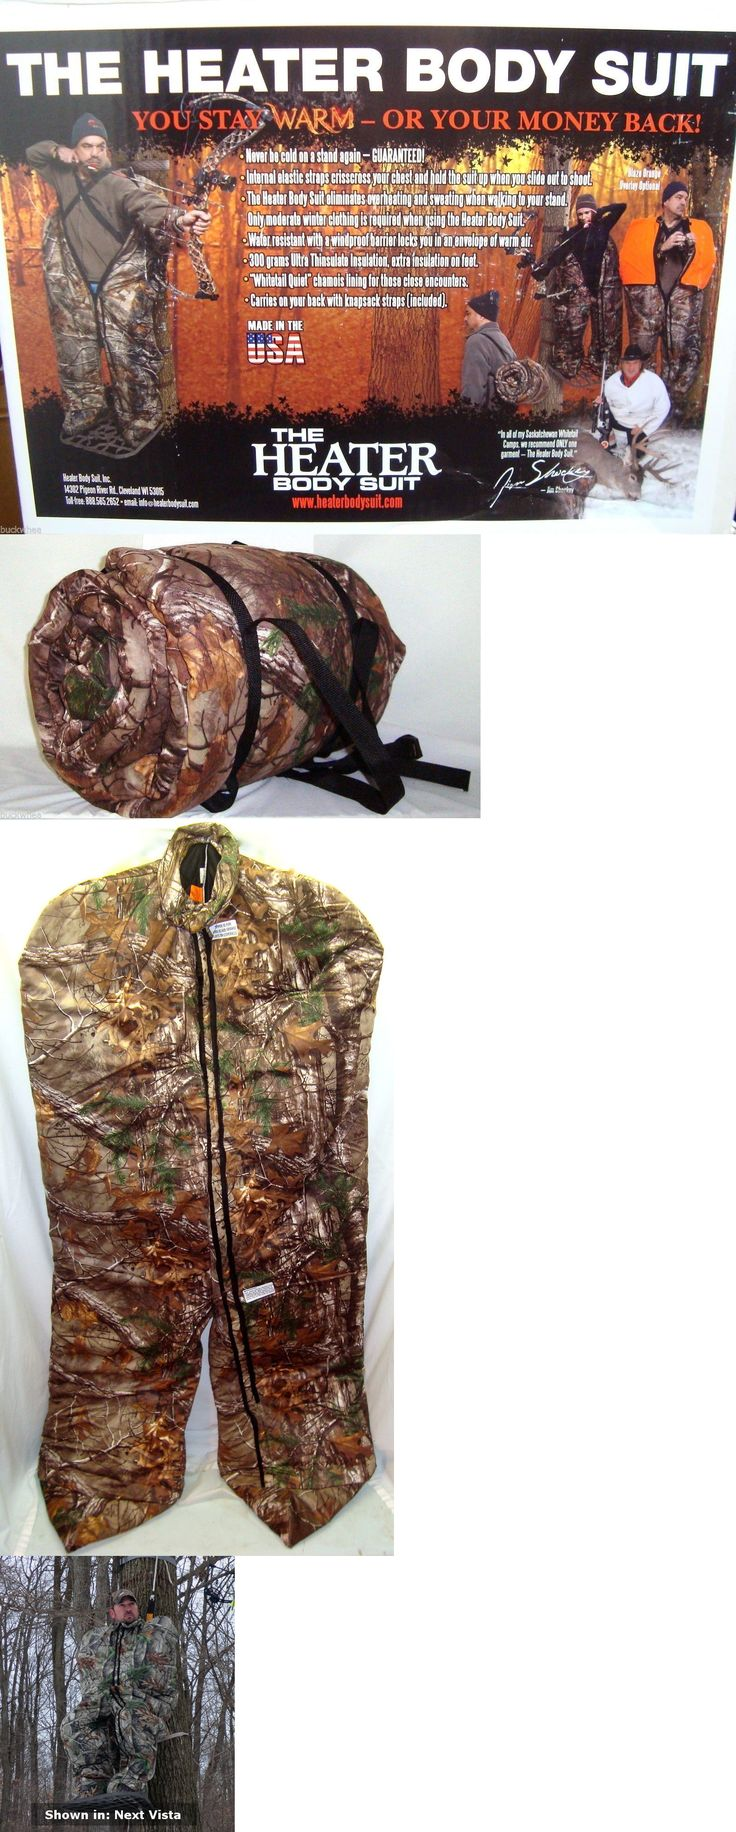 Other Hunting Clothing and Accs 159036: The Heater Body Suit - Tall Wide - Realtree Camo -> BUY IT NOW ONLY: $359.95 on eBay!